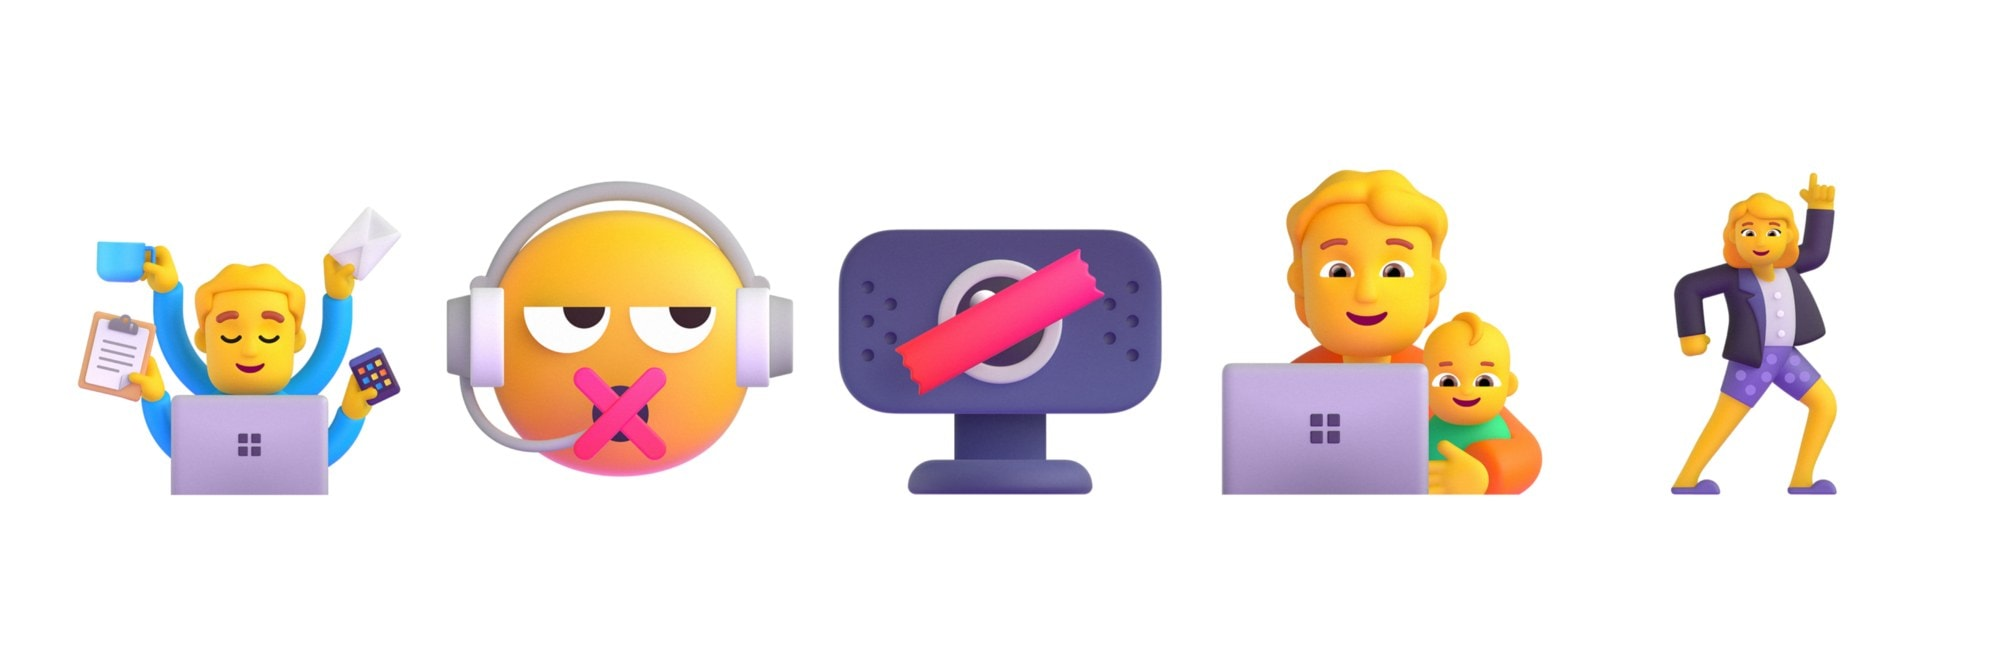 Concept design for workplace appropriate emojis. Image: Microsoft